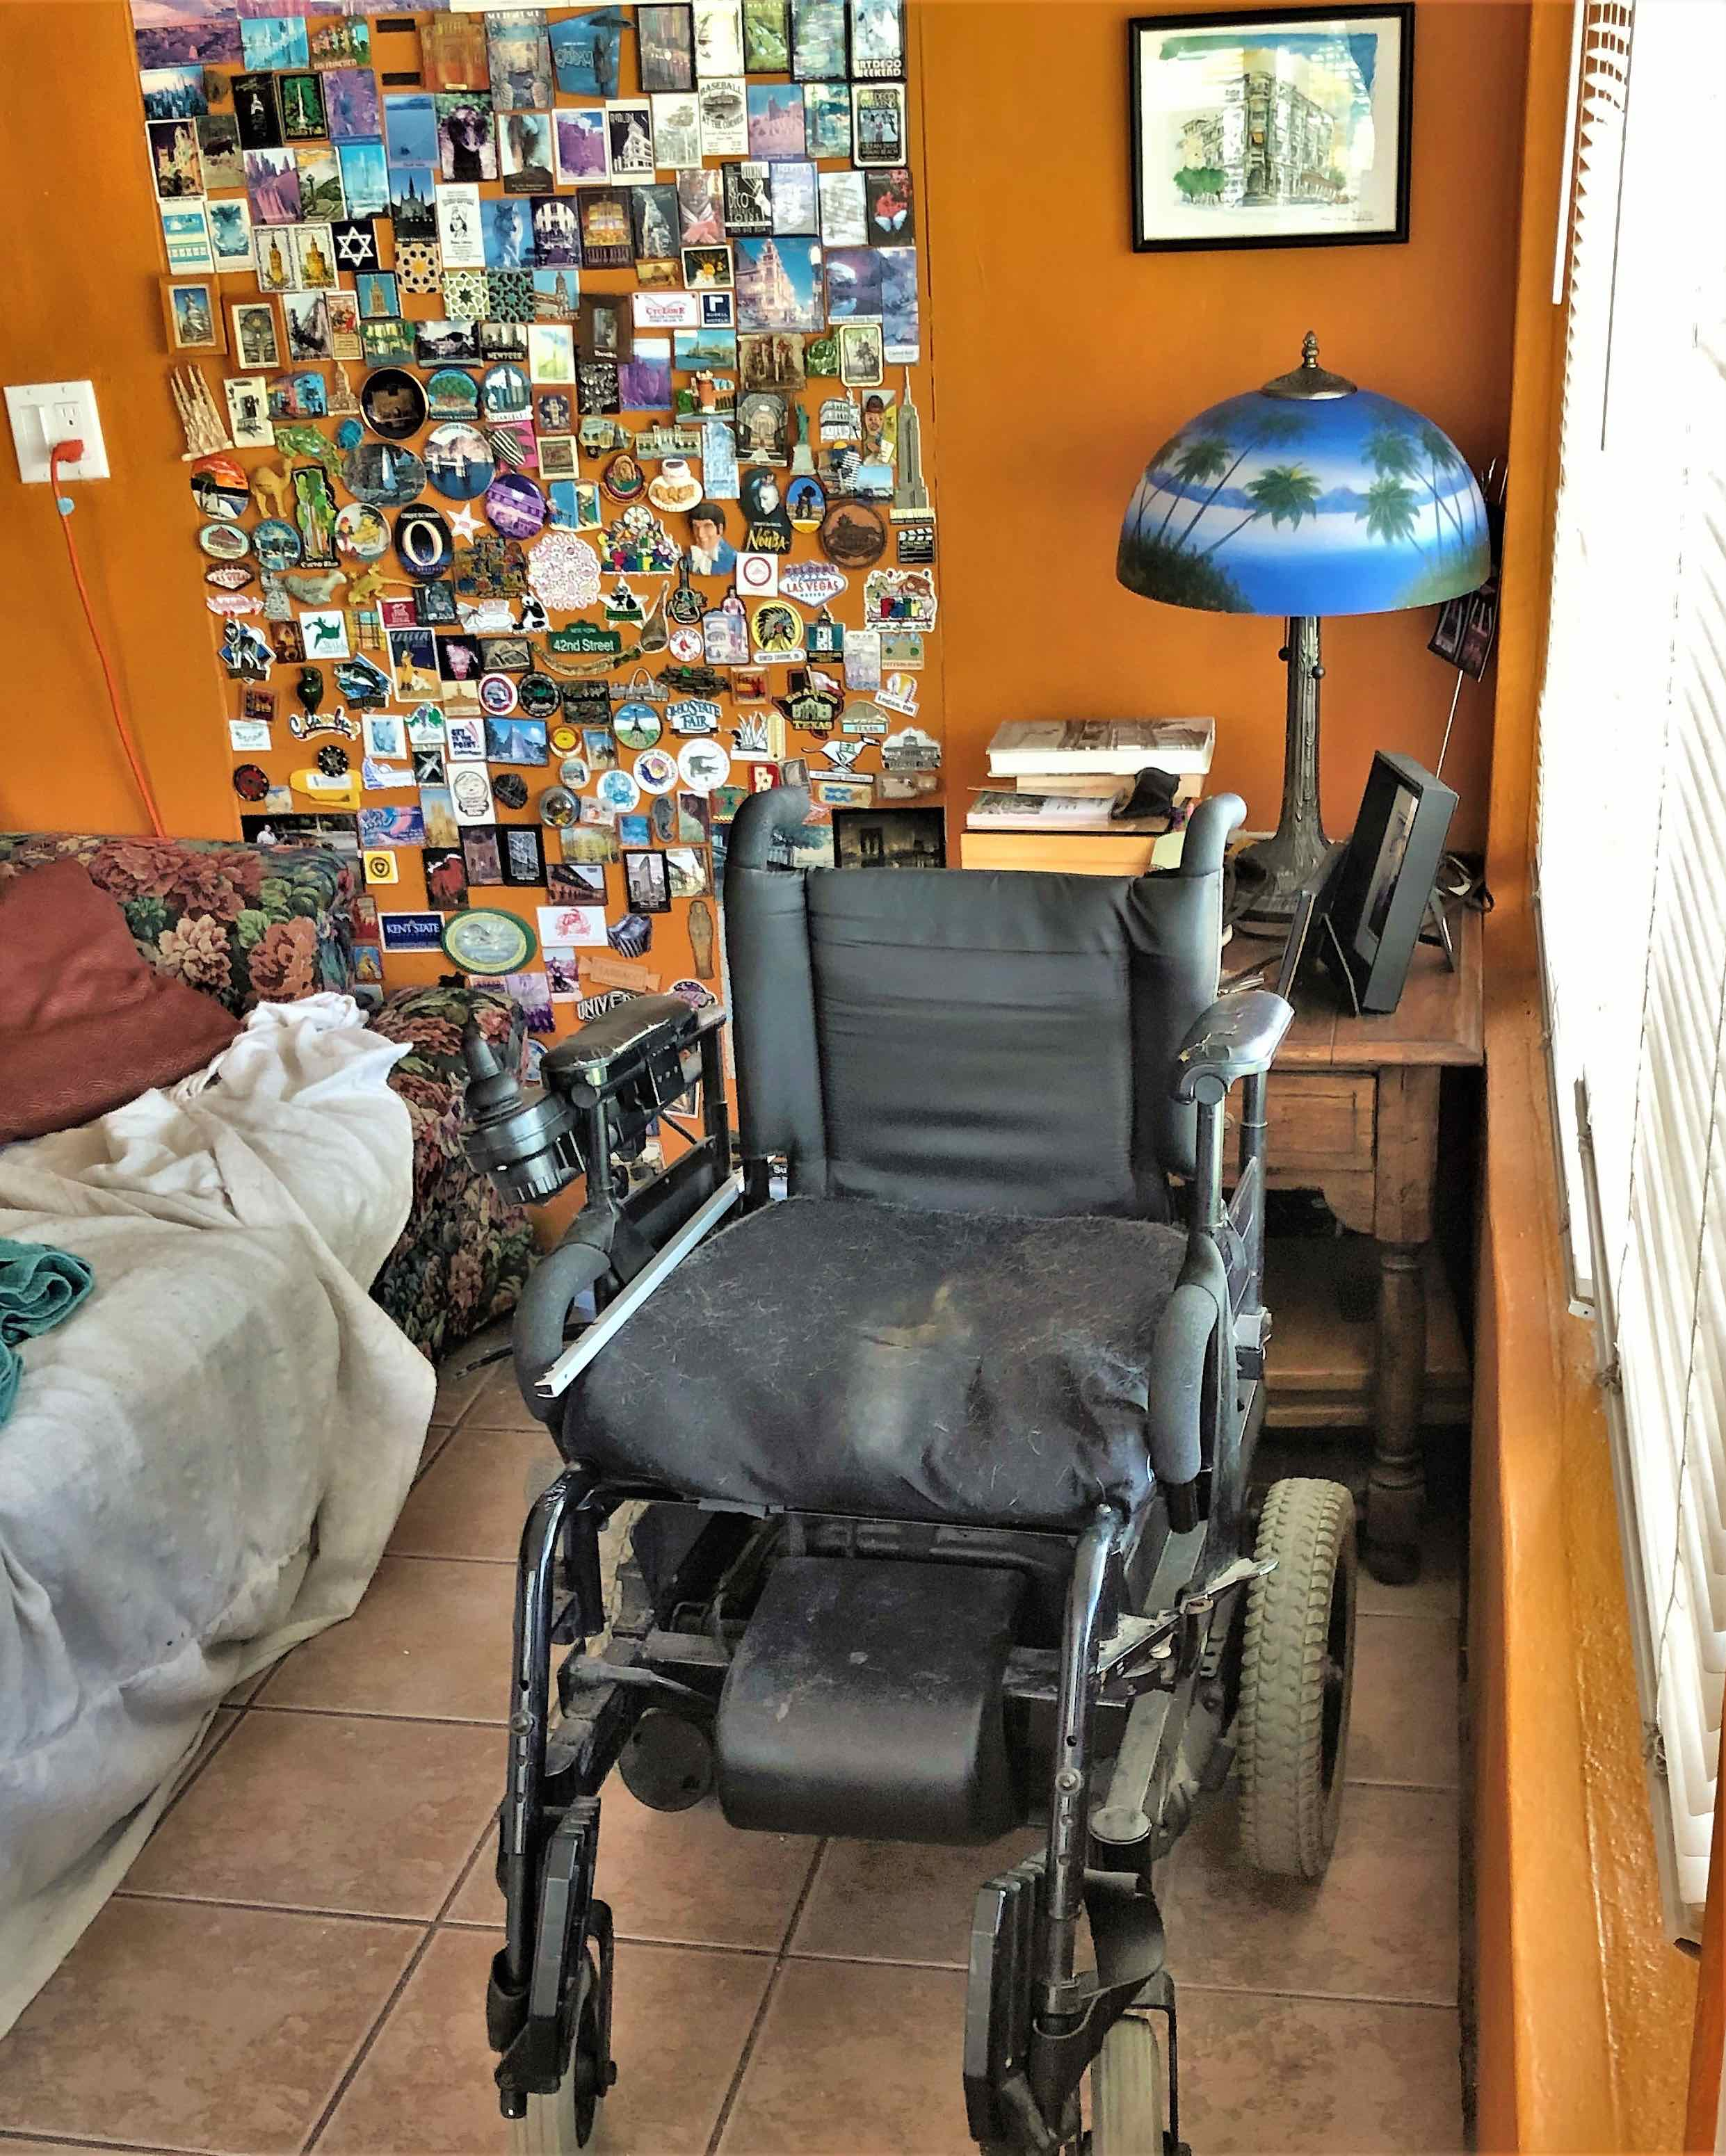 Reacher in wheelchair makes it easy to plug in for charge. Tropical colors brighten a room in our 100 year old house.